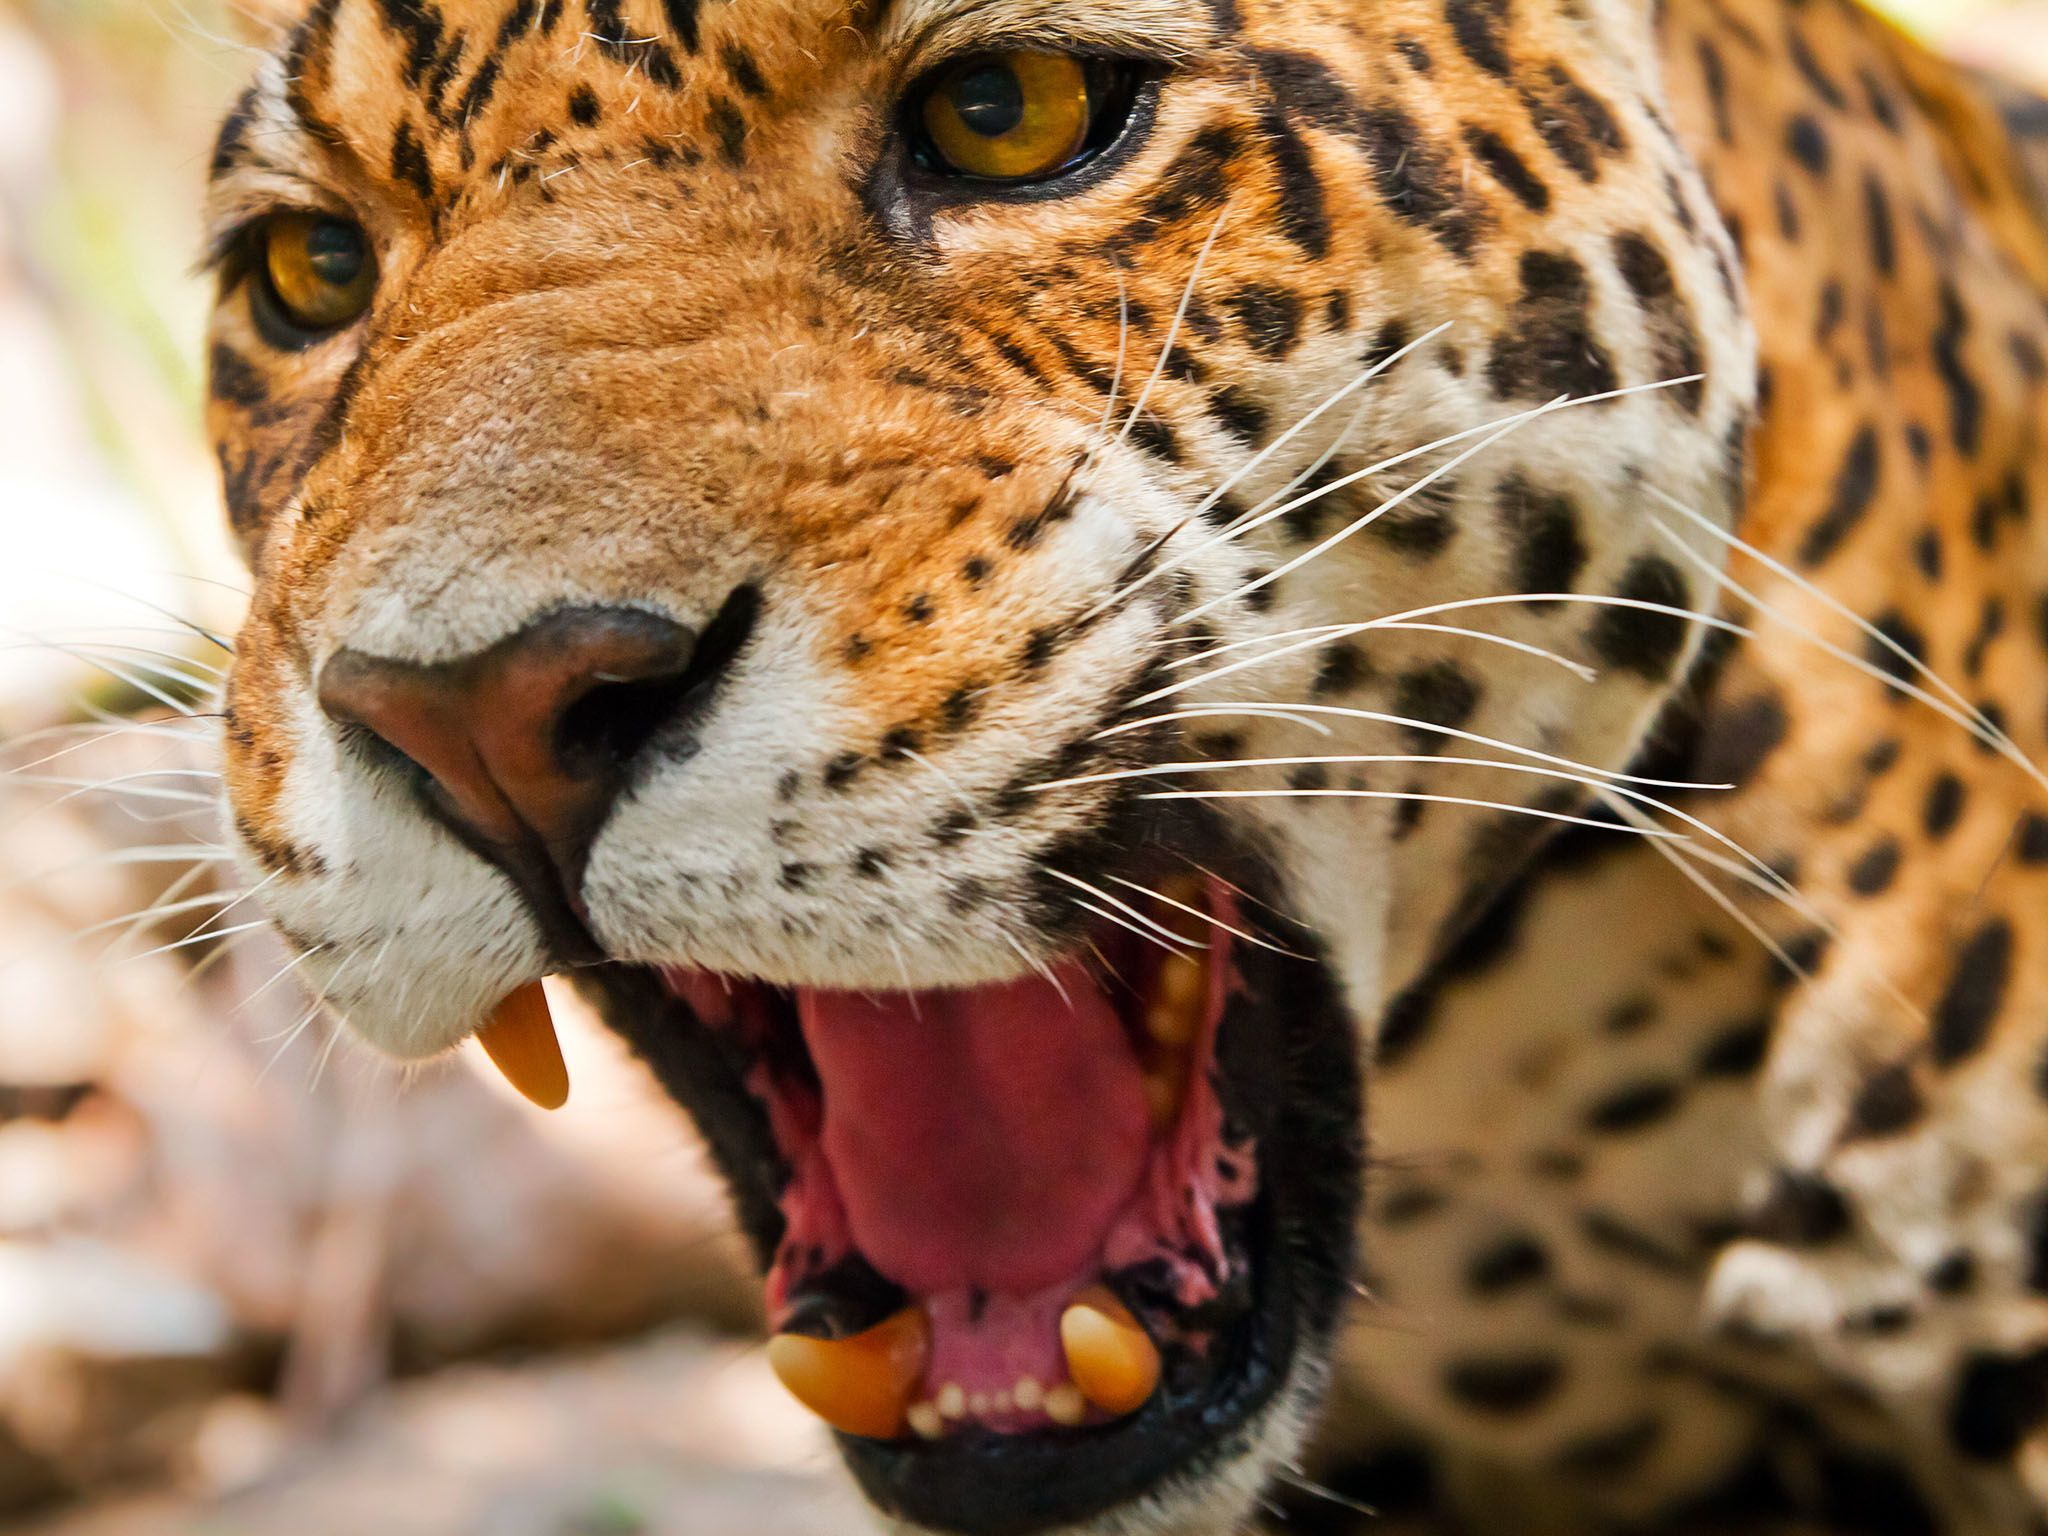 The Jaguar has the most powerful bite, pound for pound, of the big cats. This image is from... [Foto del día - septiembre 2015]